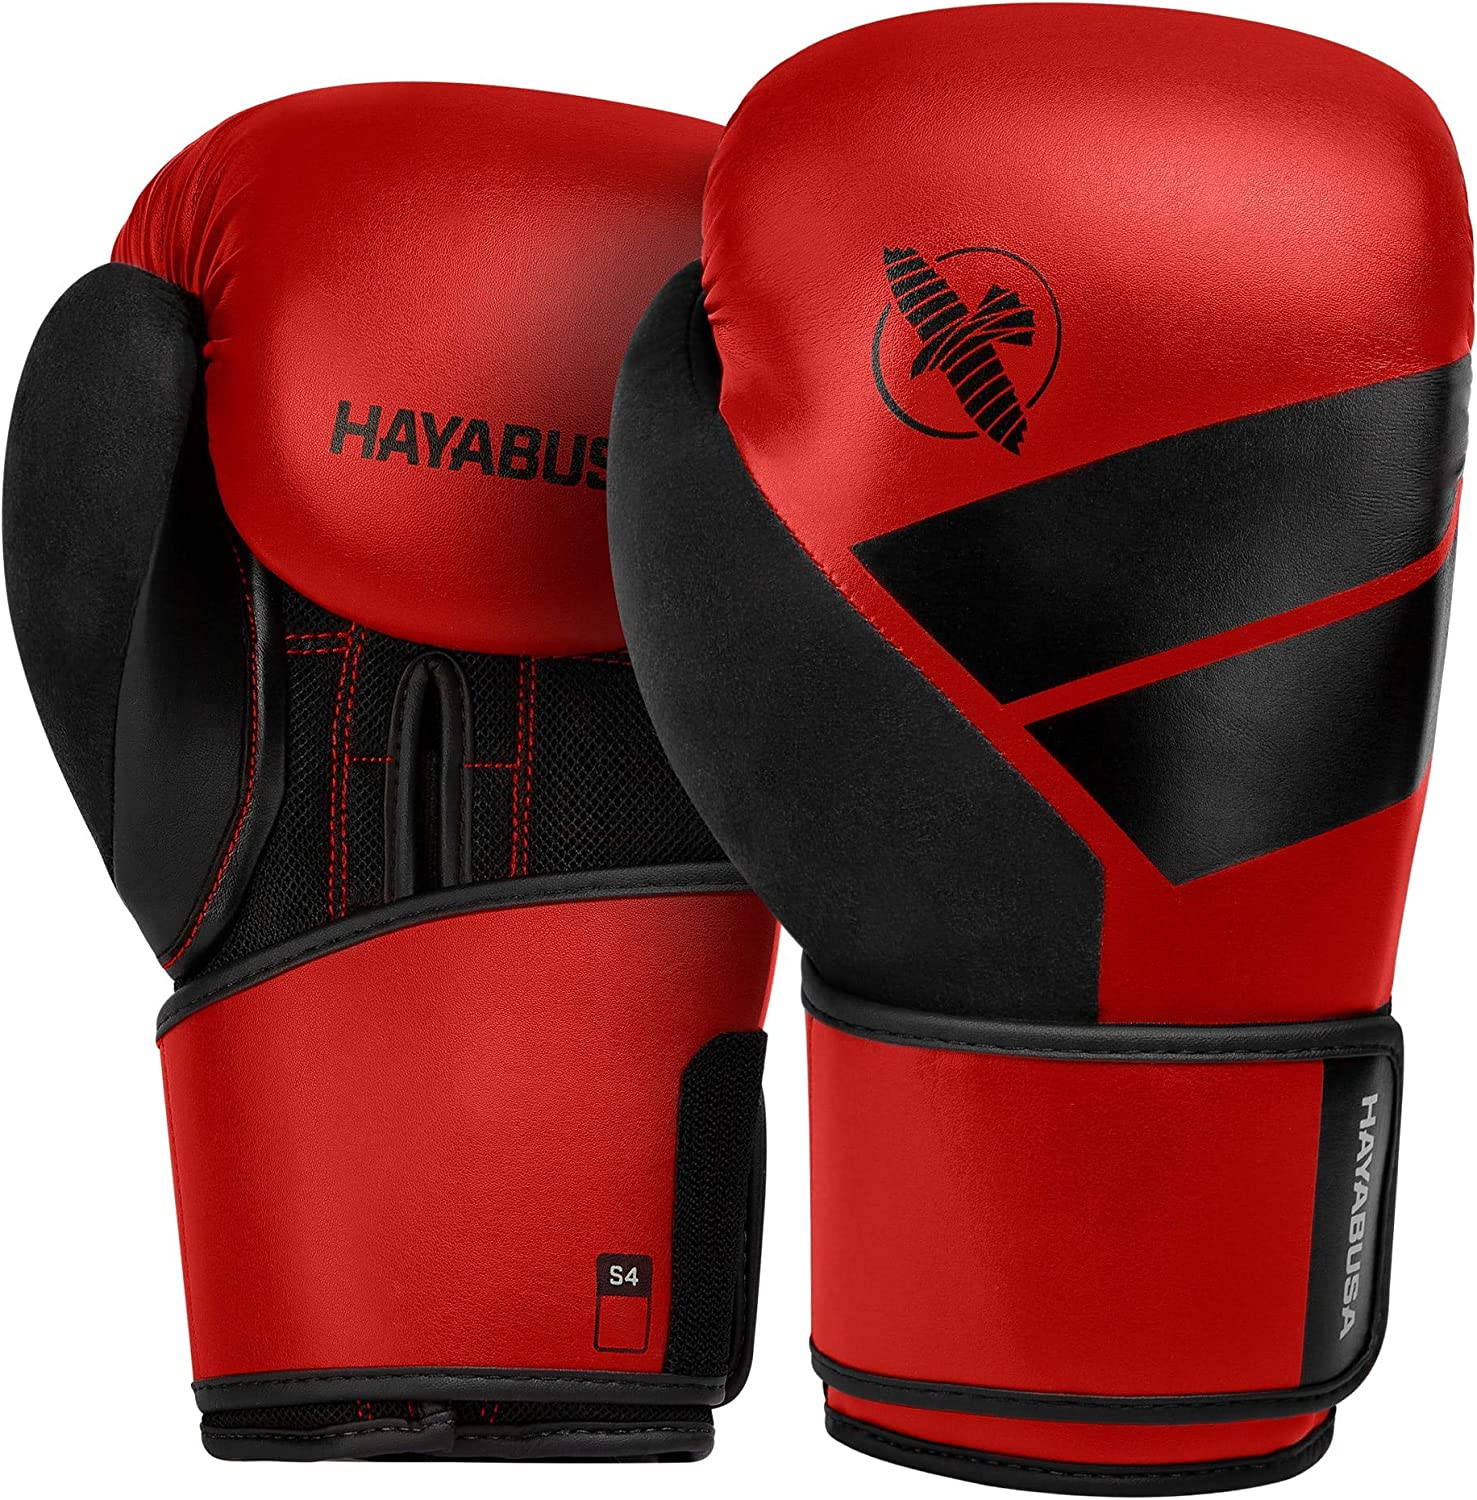 Hayabusa S4 Boxing Factory outlet Gloves and Men Special sale item for Women